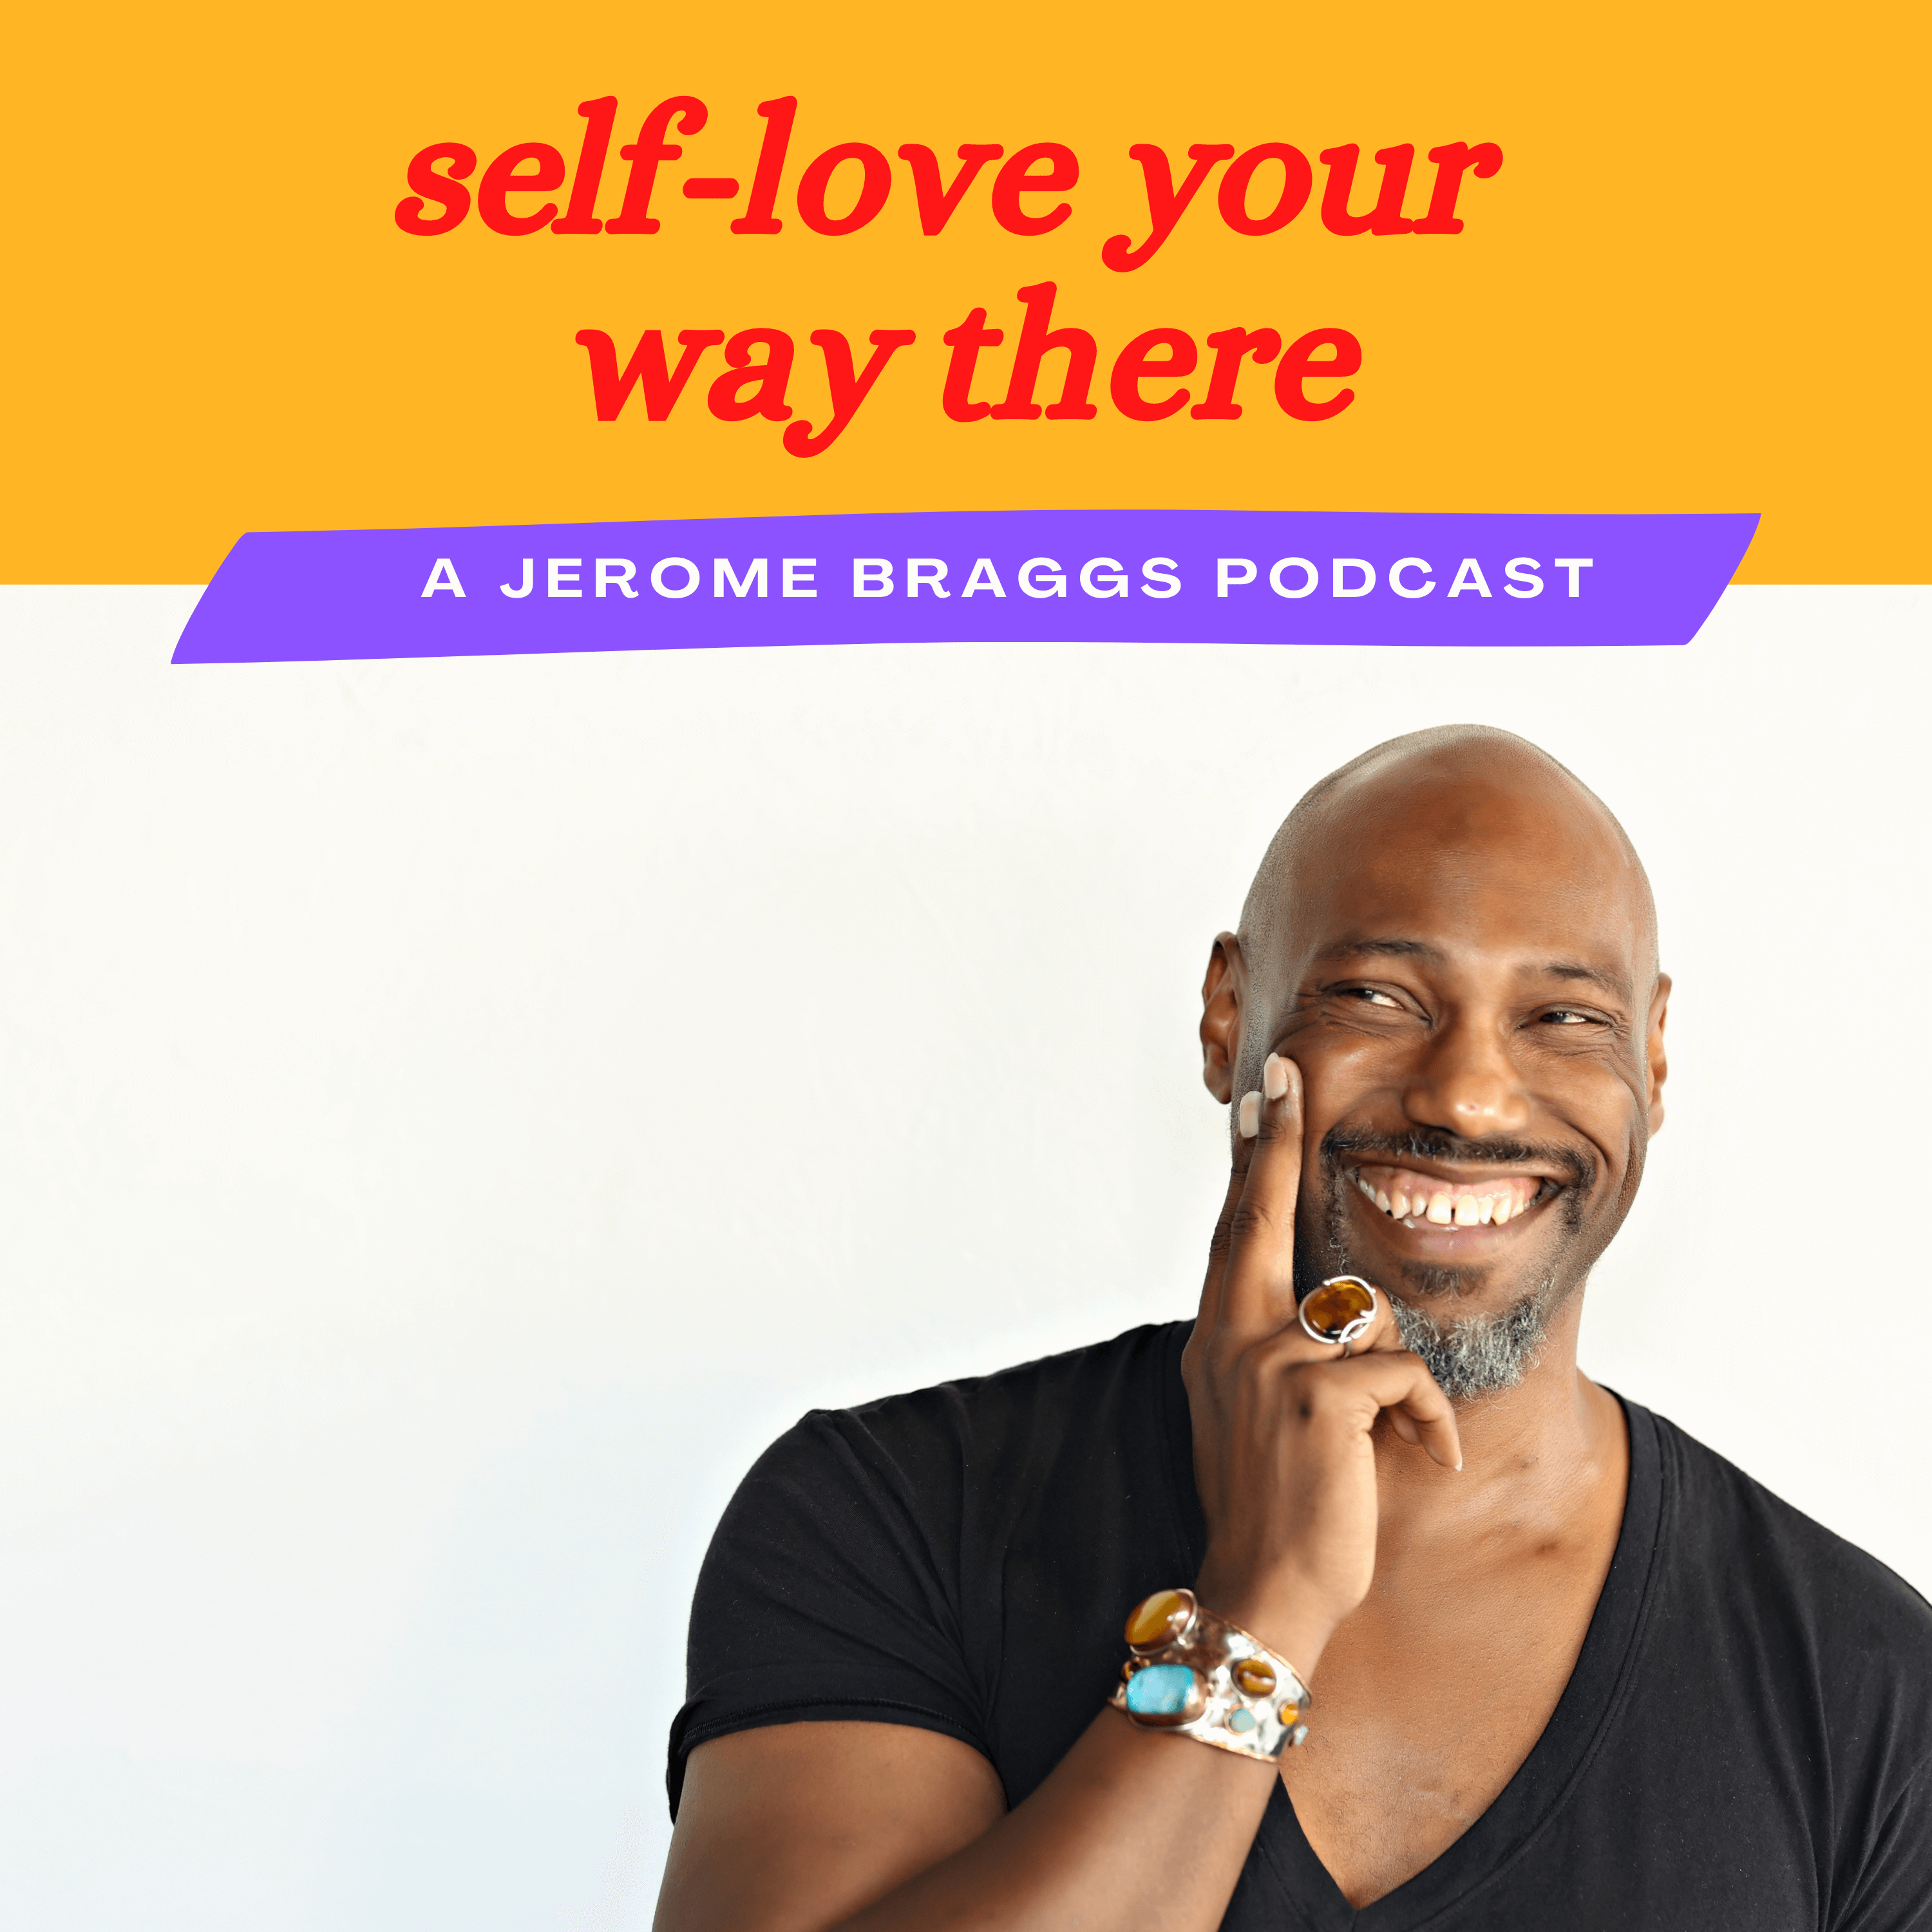 Self-love Your Way There Podcast Cover